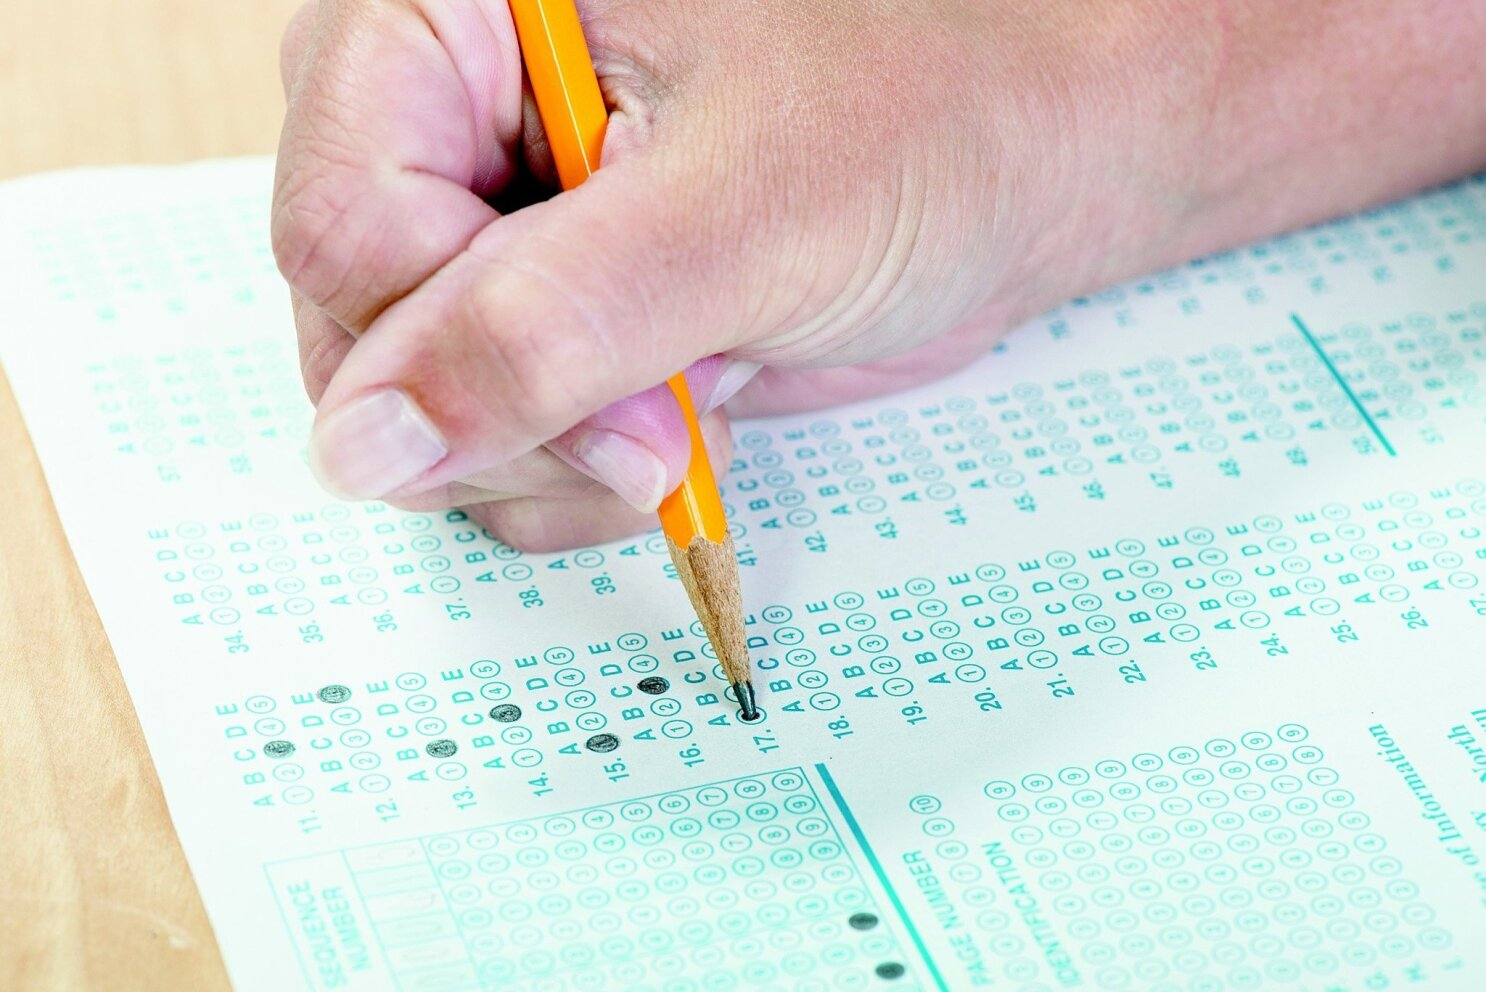 Commentary: SATs can help students overcome disadvantages